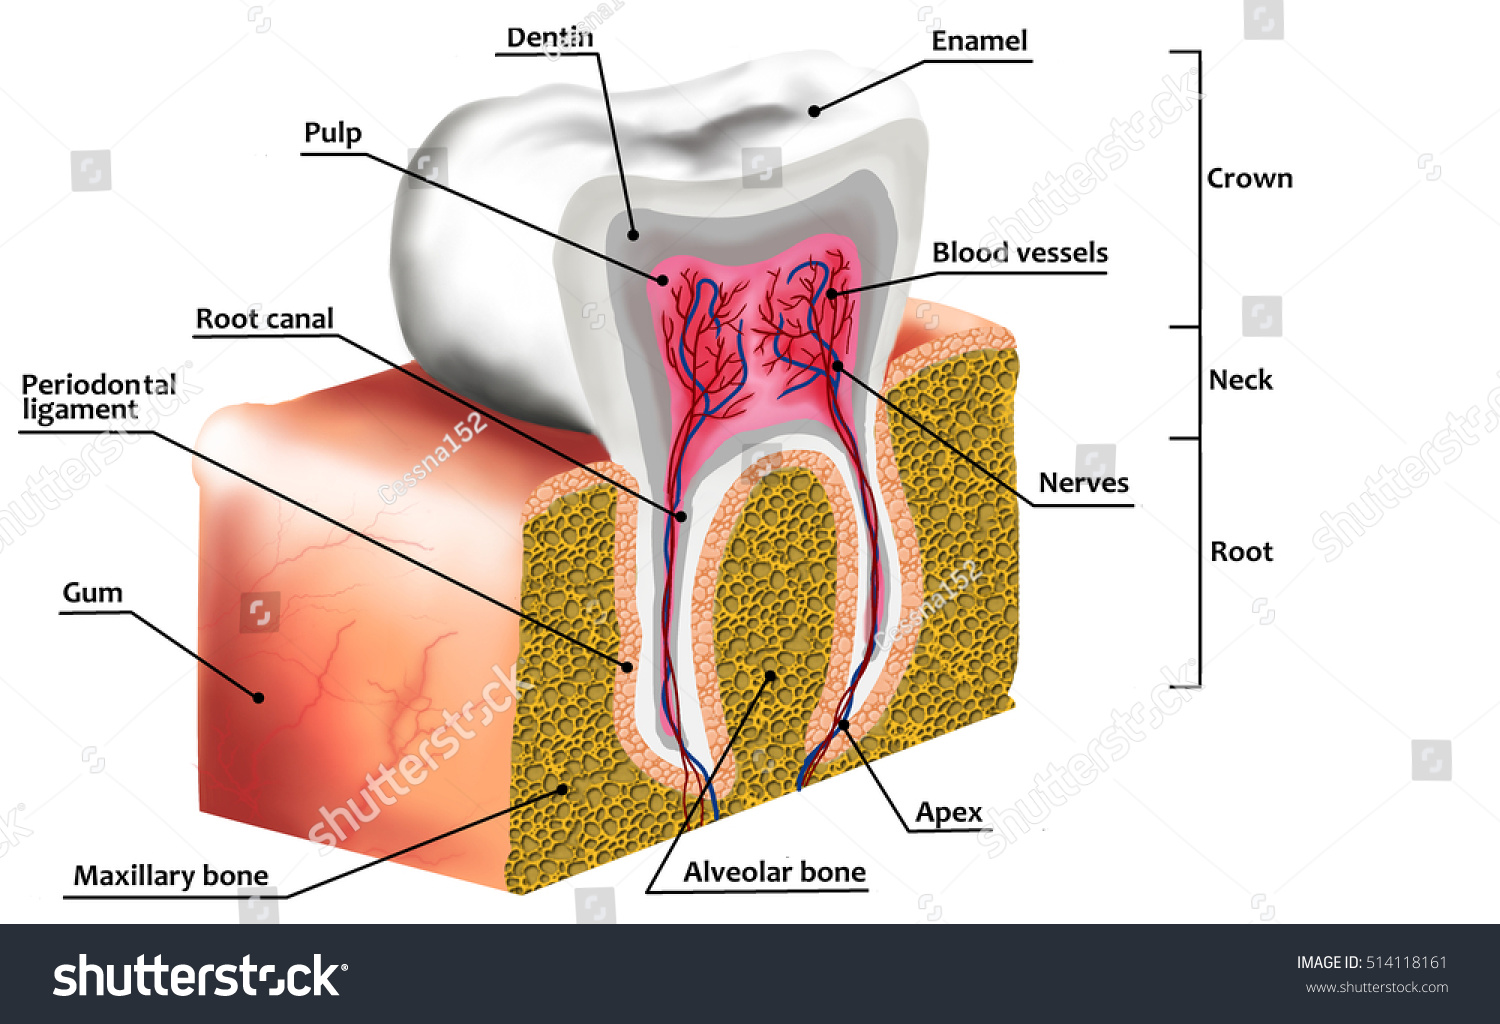 Human Tooth Anatomy Diagram Description Illustration Stock ...